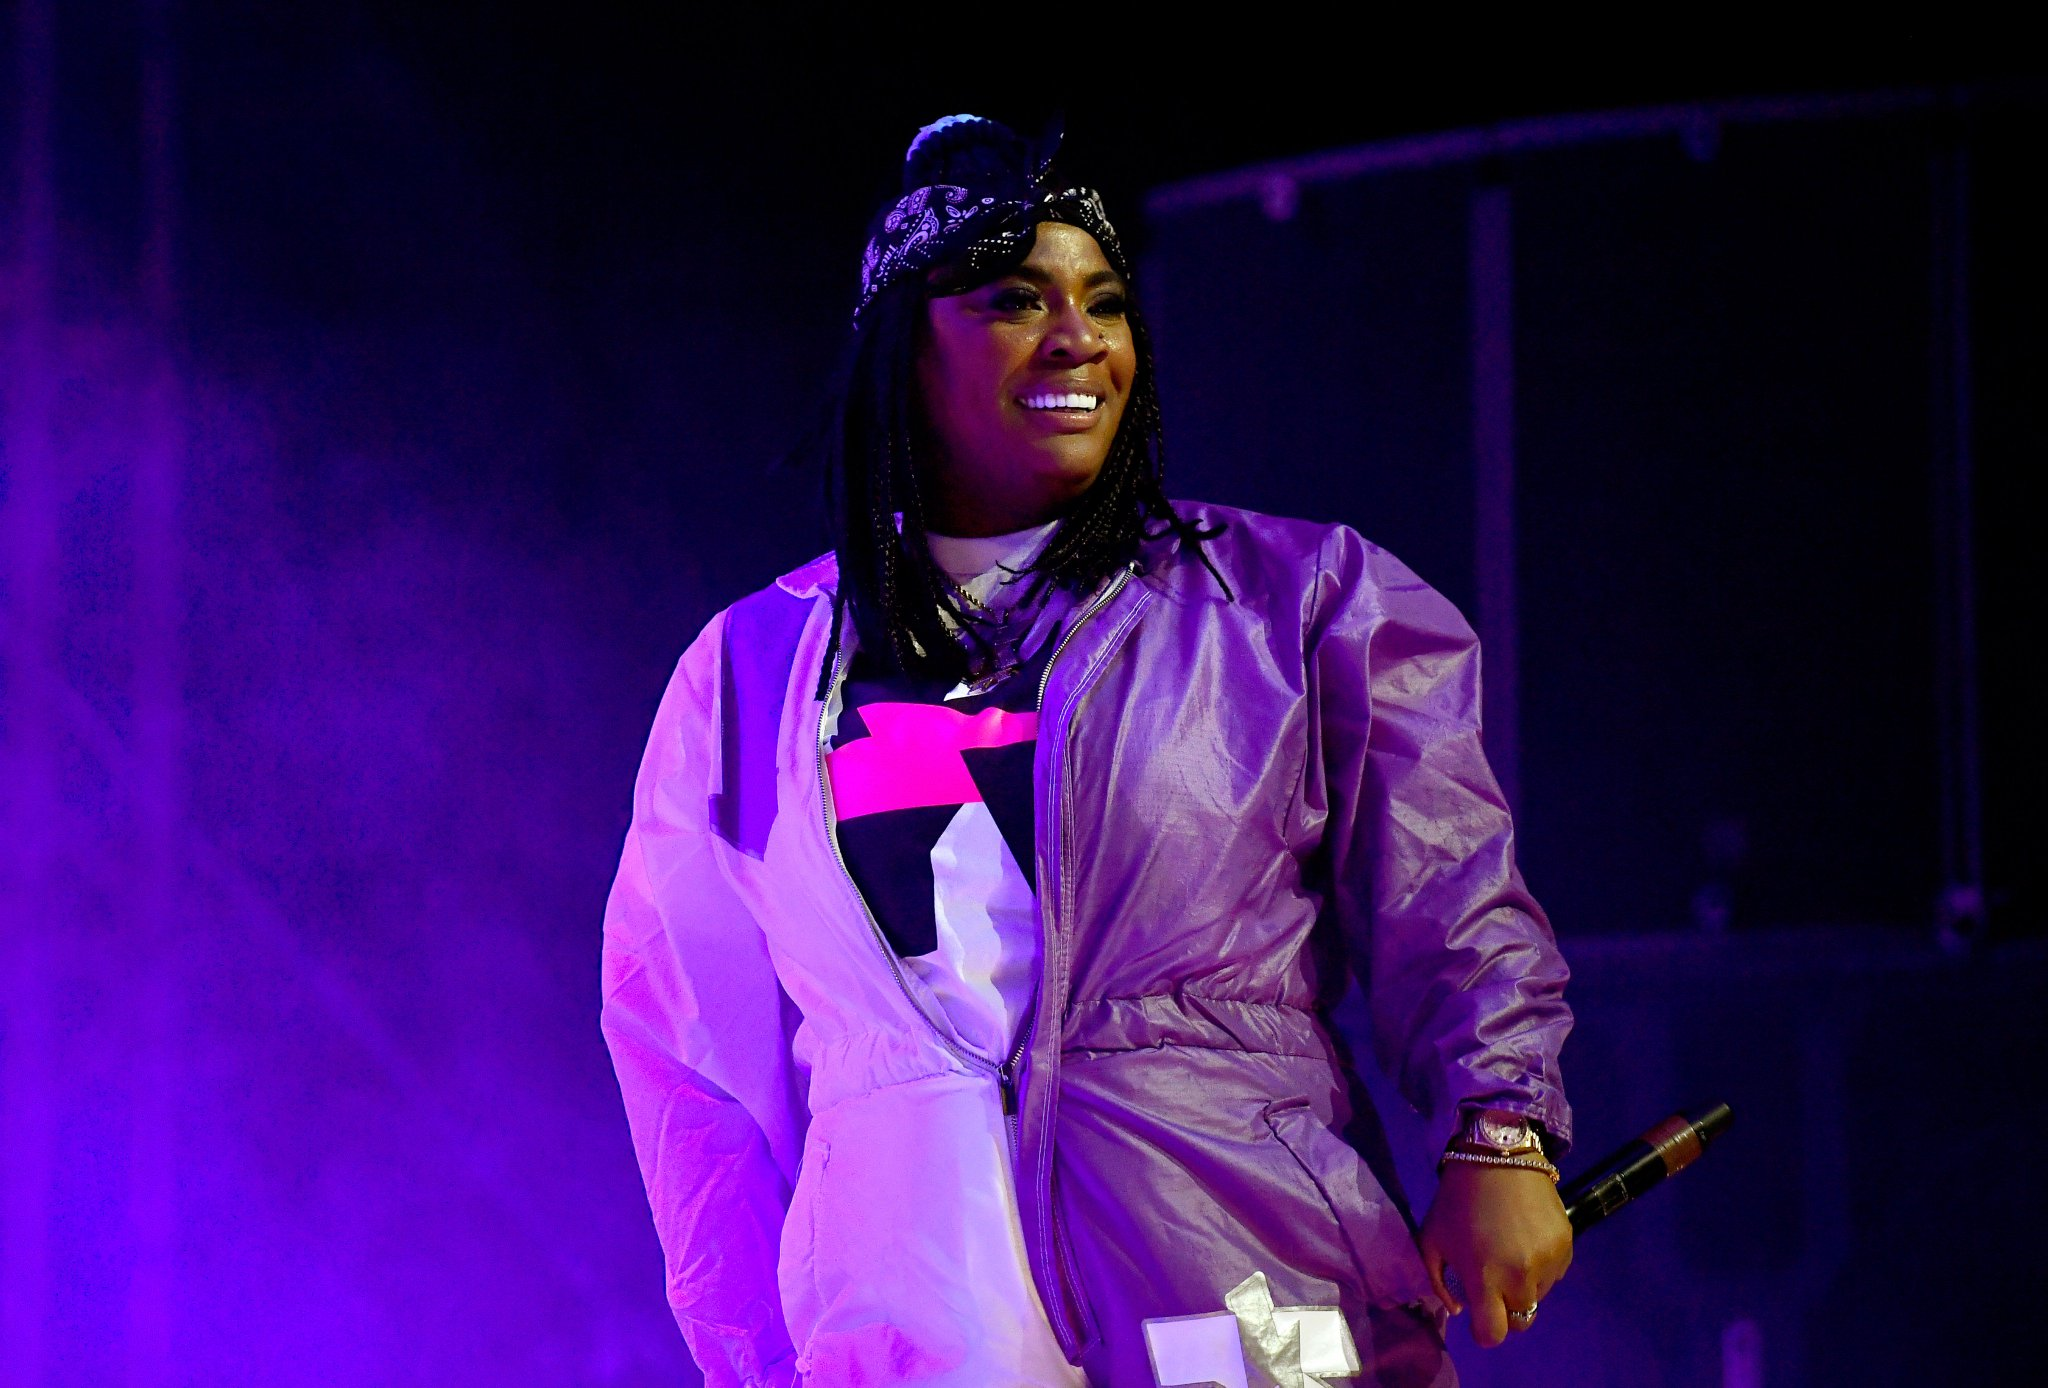 ".@kamaiyah shares ""All I Know"" featuring @trvisXX https://t.co/ynRNTlVcu6 https://t.co/nHKEoaxQ4w"